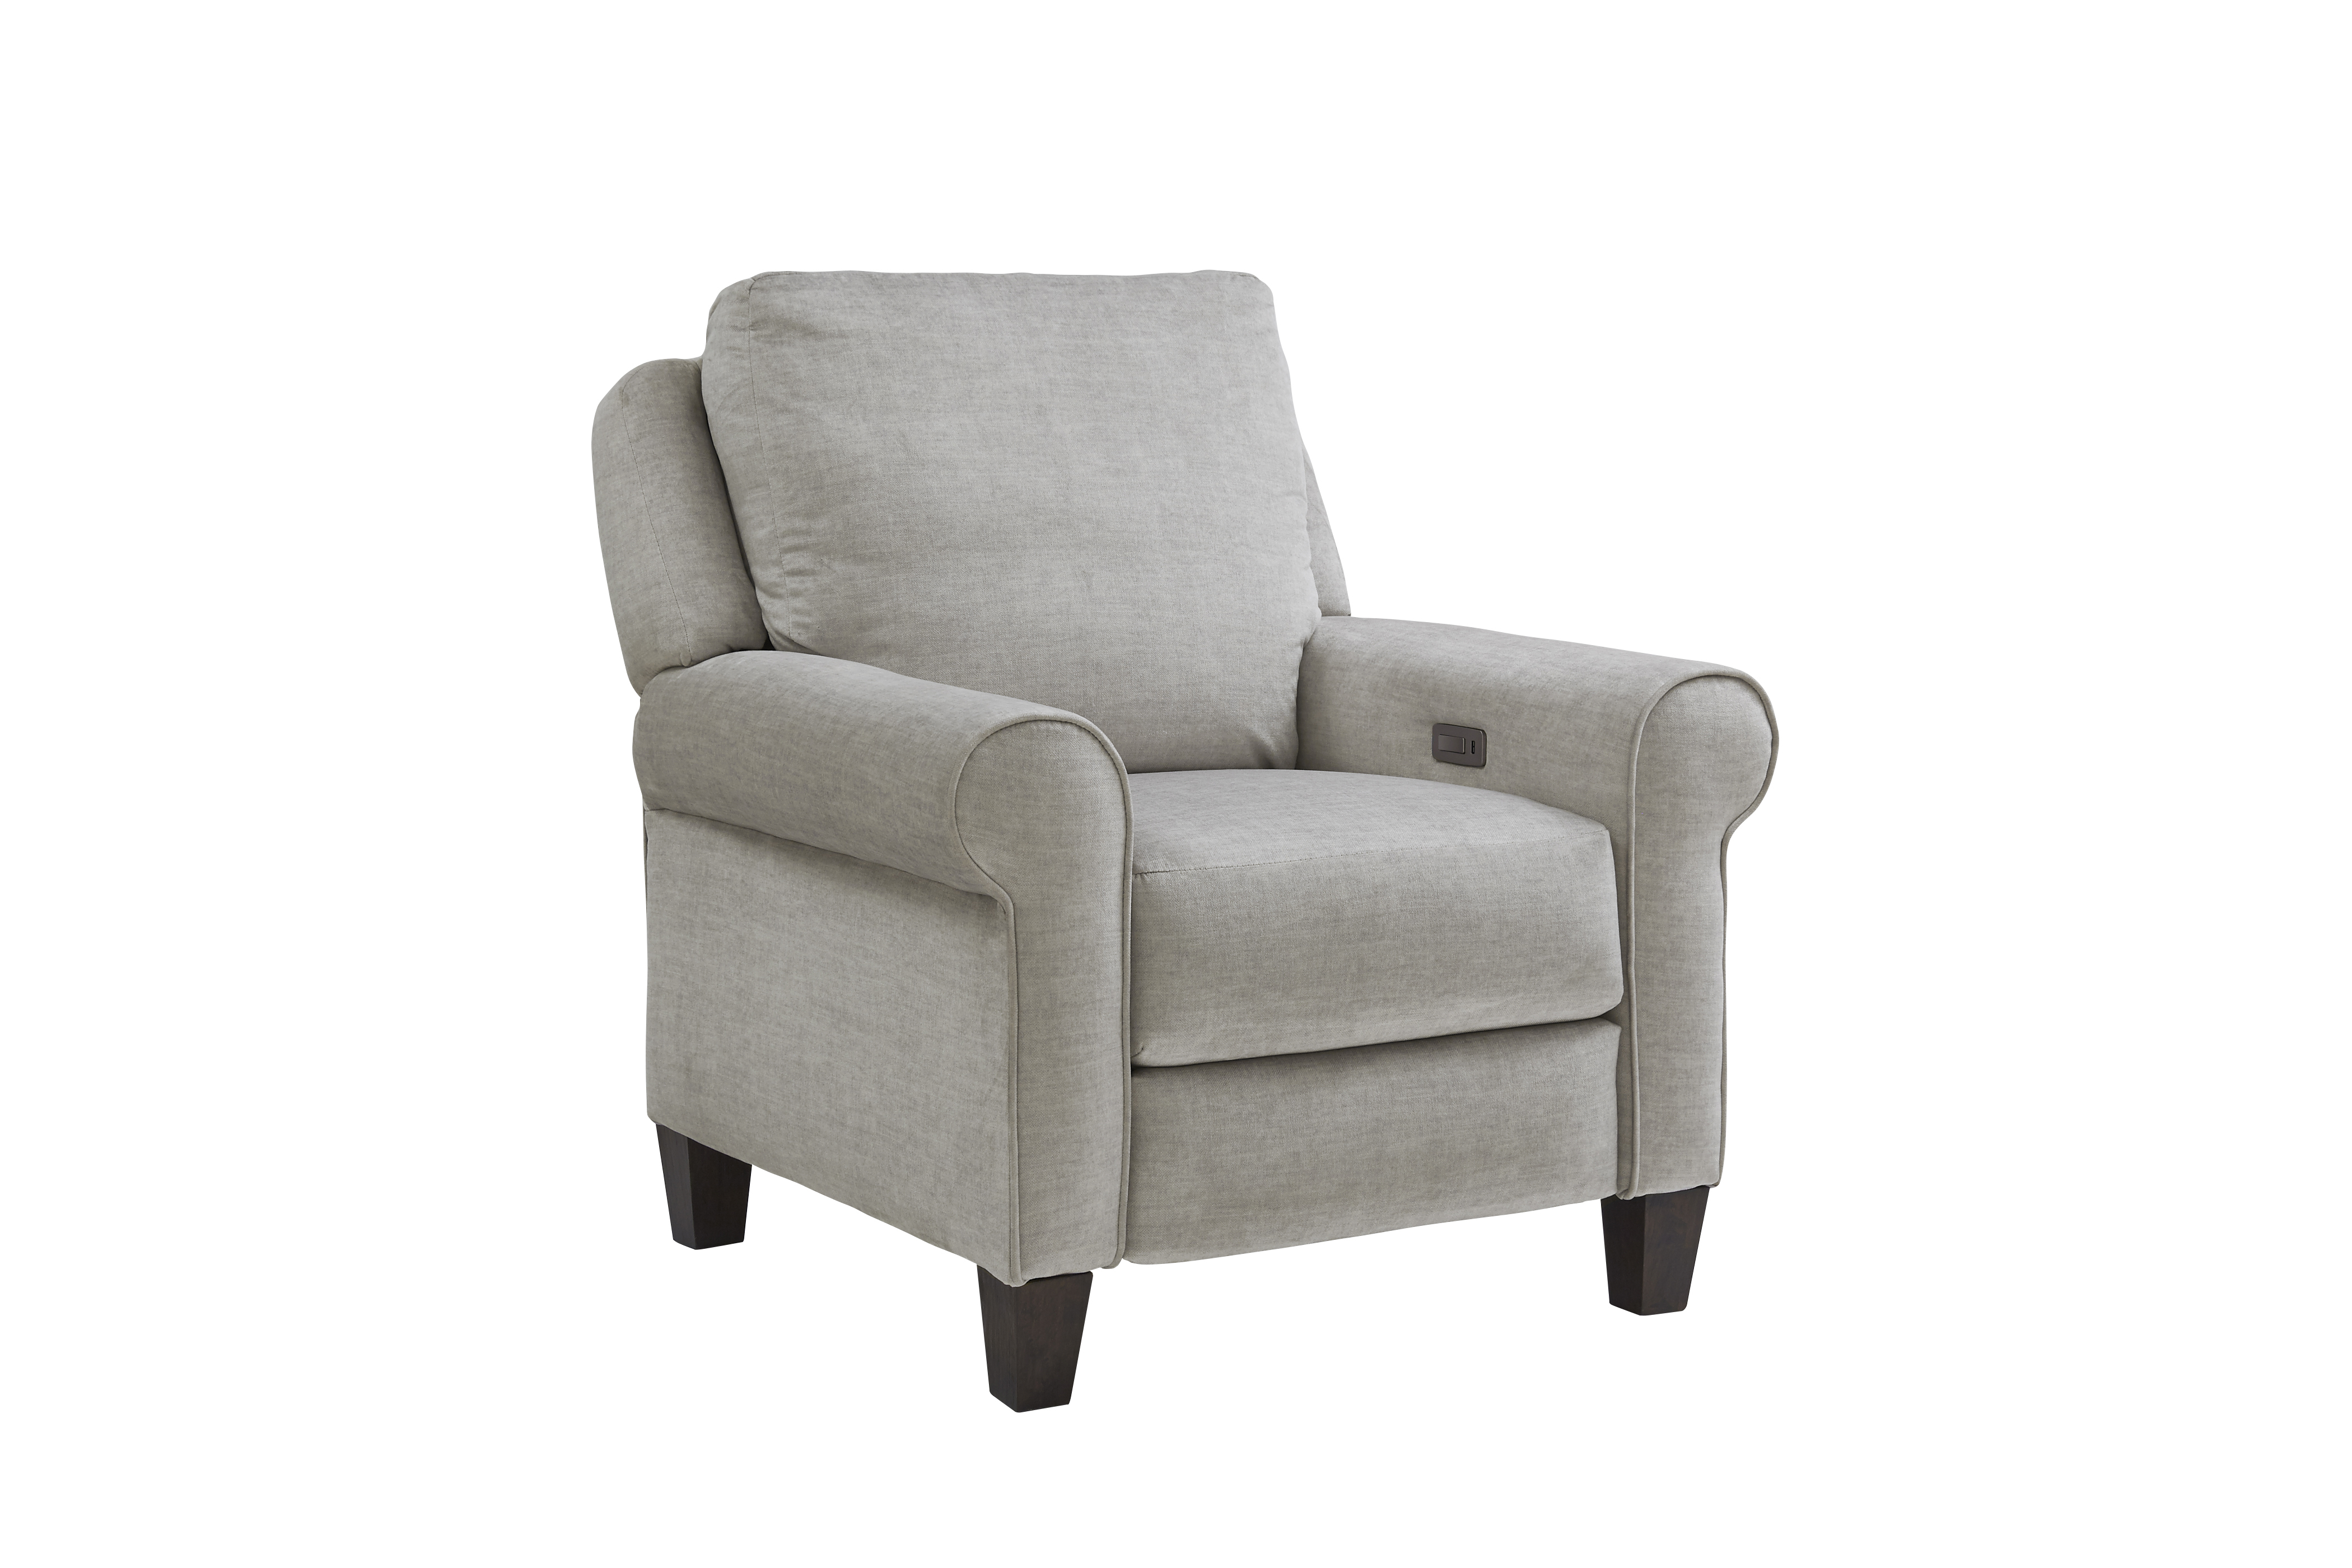 1689P-61689P-DYNASTY-HI-LEG-RECLINER-IN-157-09-LEGACY-PLATINUM-SWP-2-THS